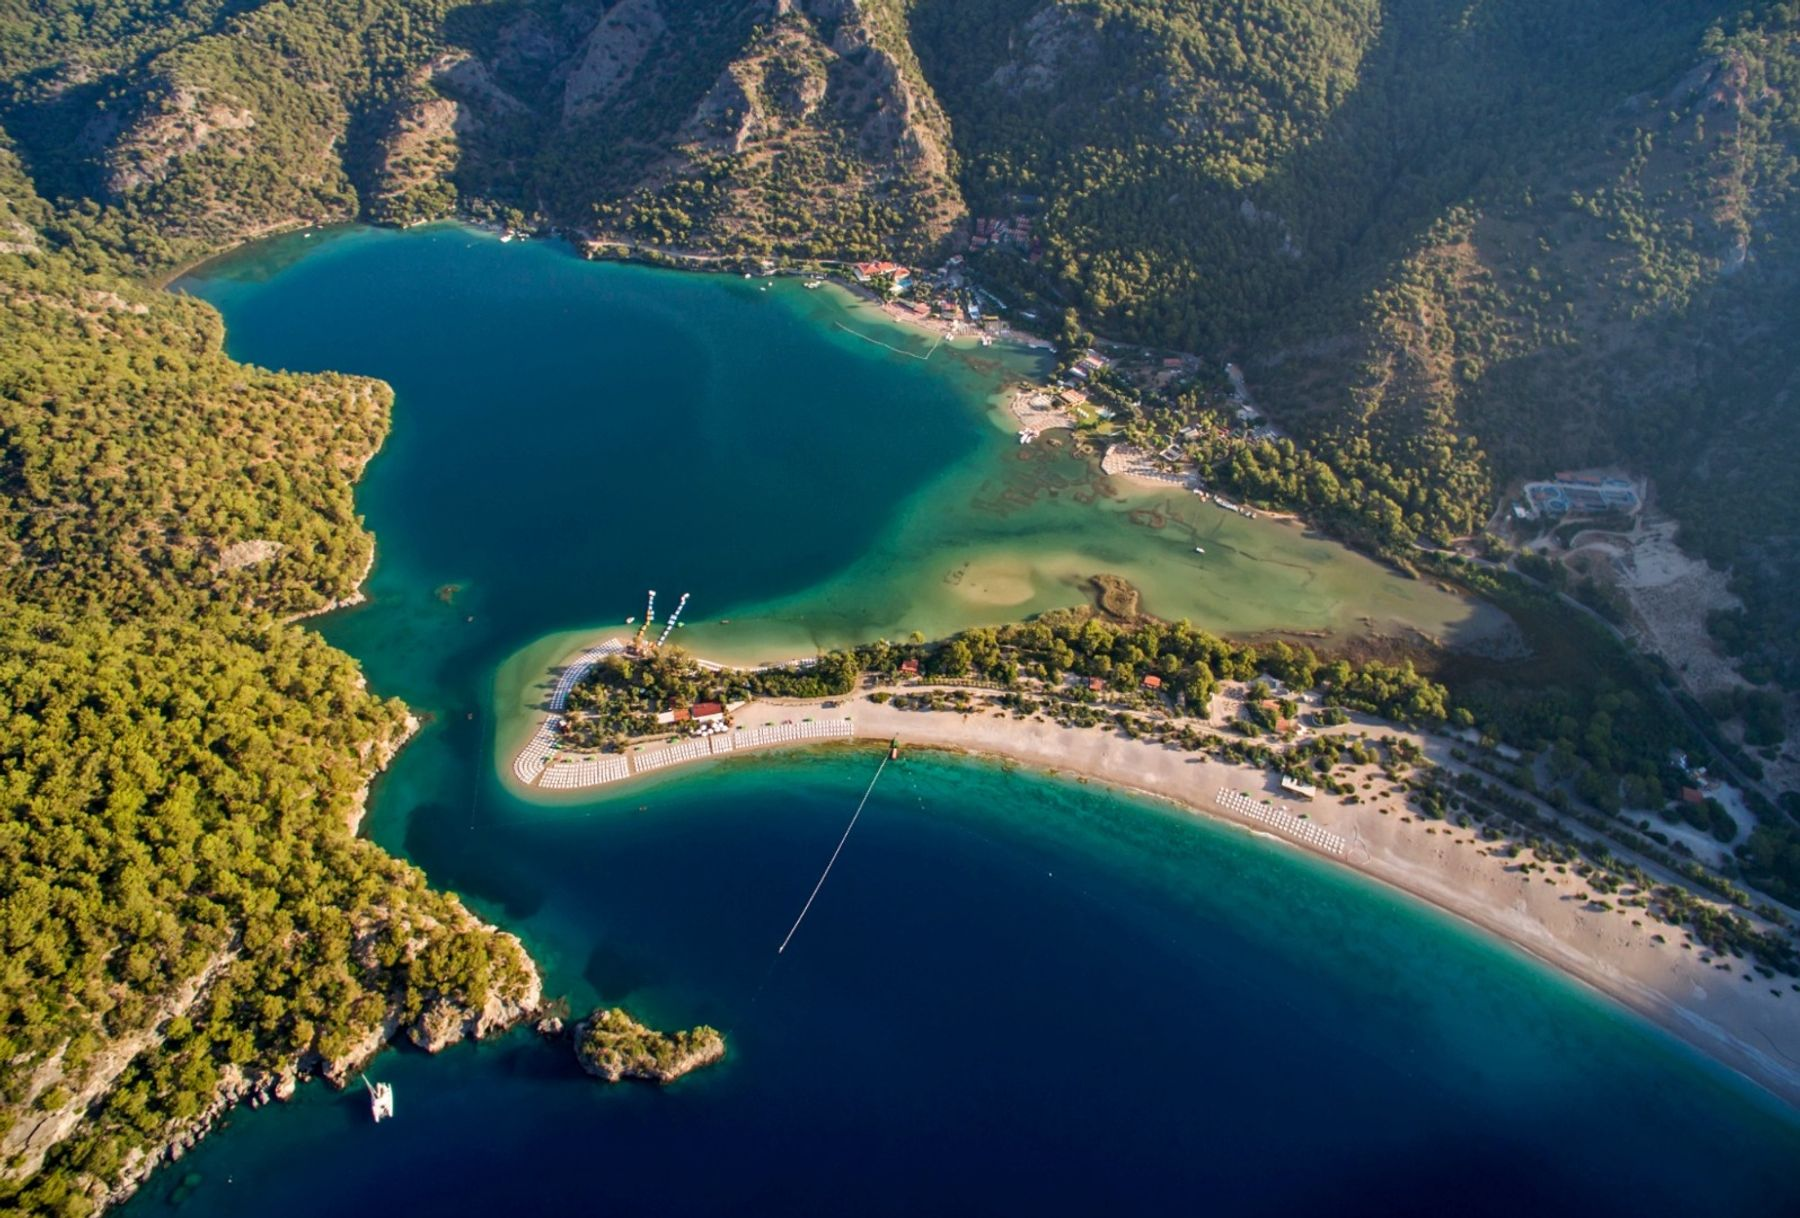 Oludeniz in Turkey is one of the most stunning beaches in the world